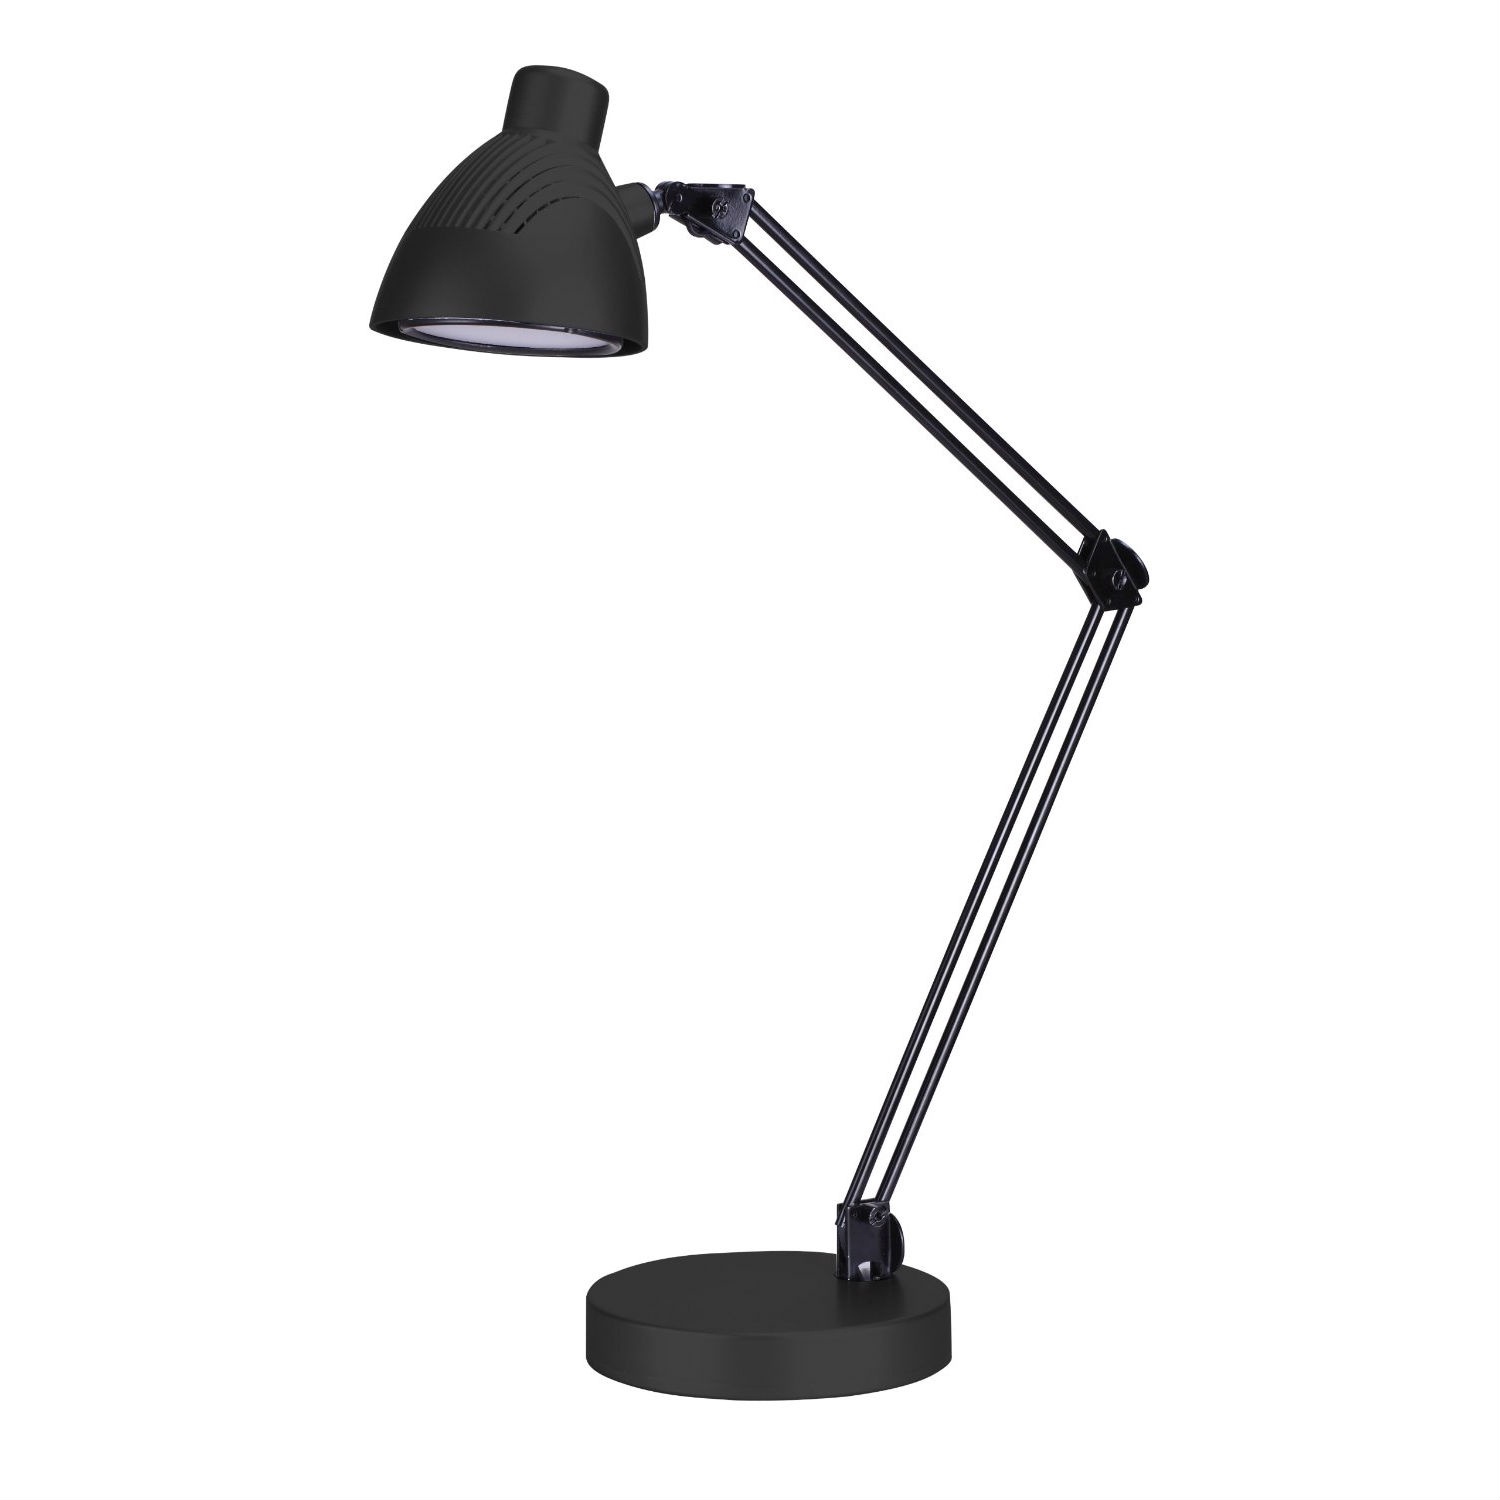 Perfect for professionals, students and instructors the Energy Efficient LED Architect Desk Lamp is engineered and designed to bring your desk or work area into the 21st century without breaking the bank. LED Lighting is the future of lighting as LED lights consume up to 90% less power while putting out the same amount of lumens (light). LEDs emit virtually no heat (due to their efficiency) hence no more sweating under your old inefficient desk lamp. This LED desk lamp glows at a very warm and soft 3,200K, maintains and on/off switch in the base and is ETL certified. Consuming less energy equals reduced power bills. It's time to start working or studying more efficiently. (Note: the bulb is not replaceable, but at 35,000 hour rated life run time, who cares!). NOTE: A 35,000 hour run time means at using this lamp 3 hours/day, it will last 11,666 days or about 32 years without needed to replace it!